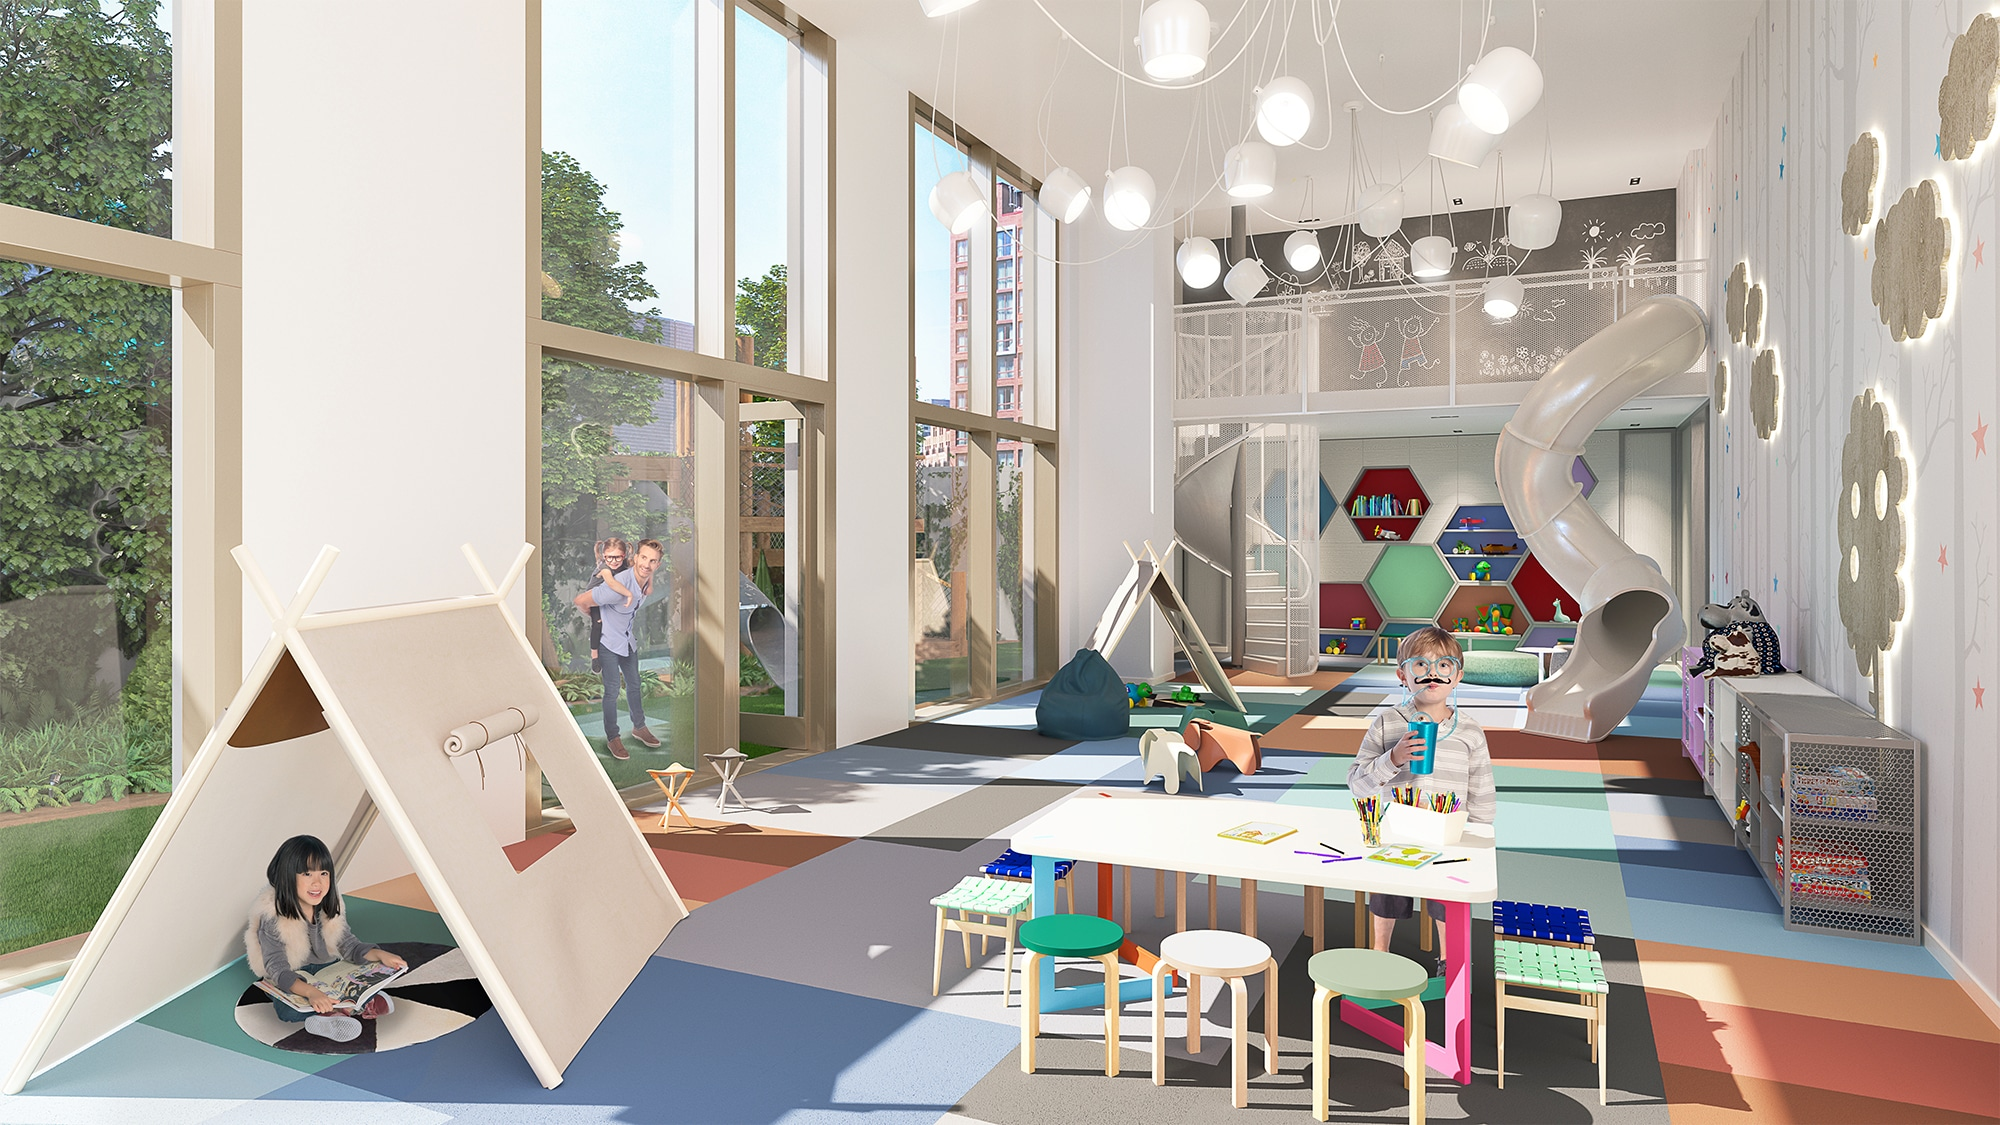 Indoor playroom at Brooklyn Point condos in NYC. Large windows, carpeted floor, toys, tents and a large built-in slide.